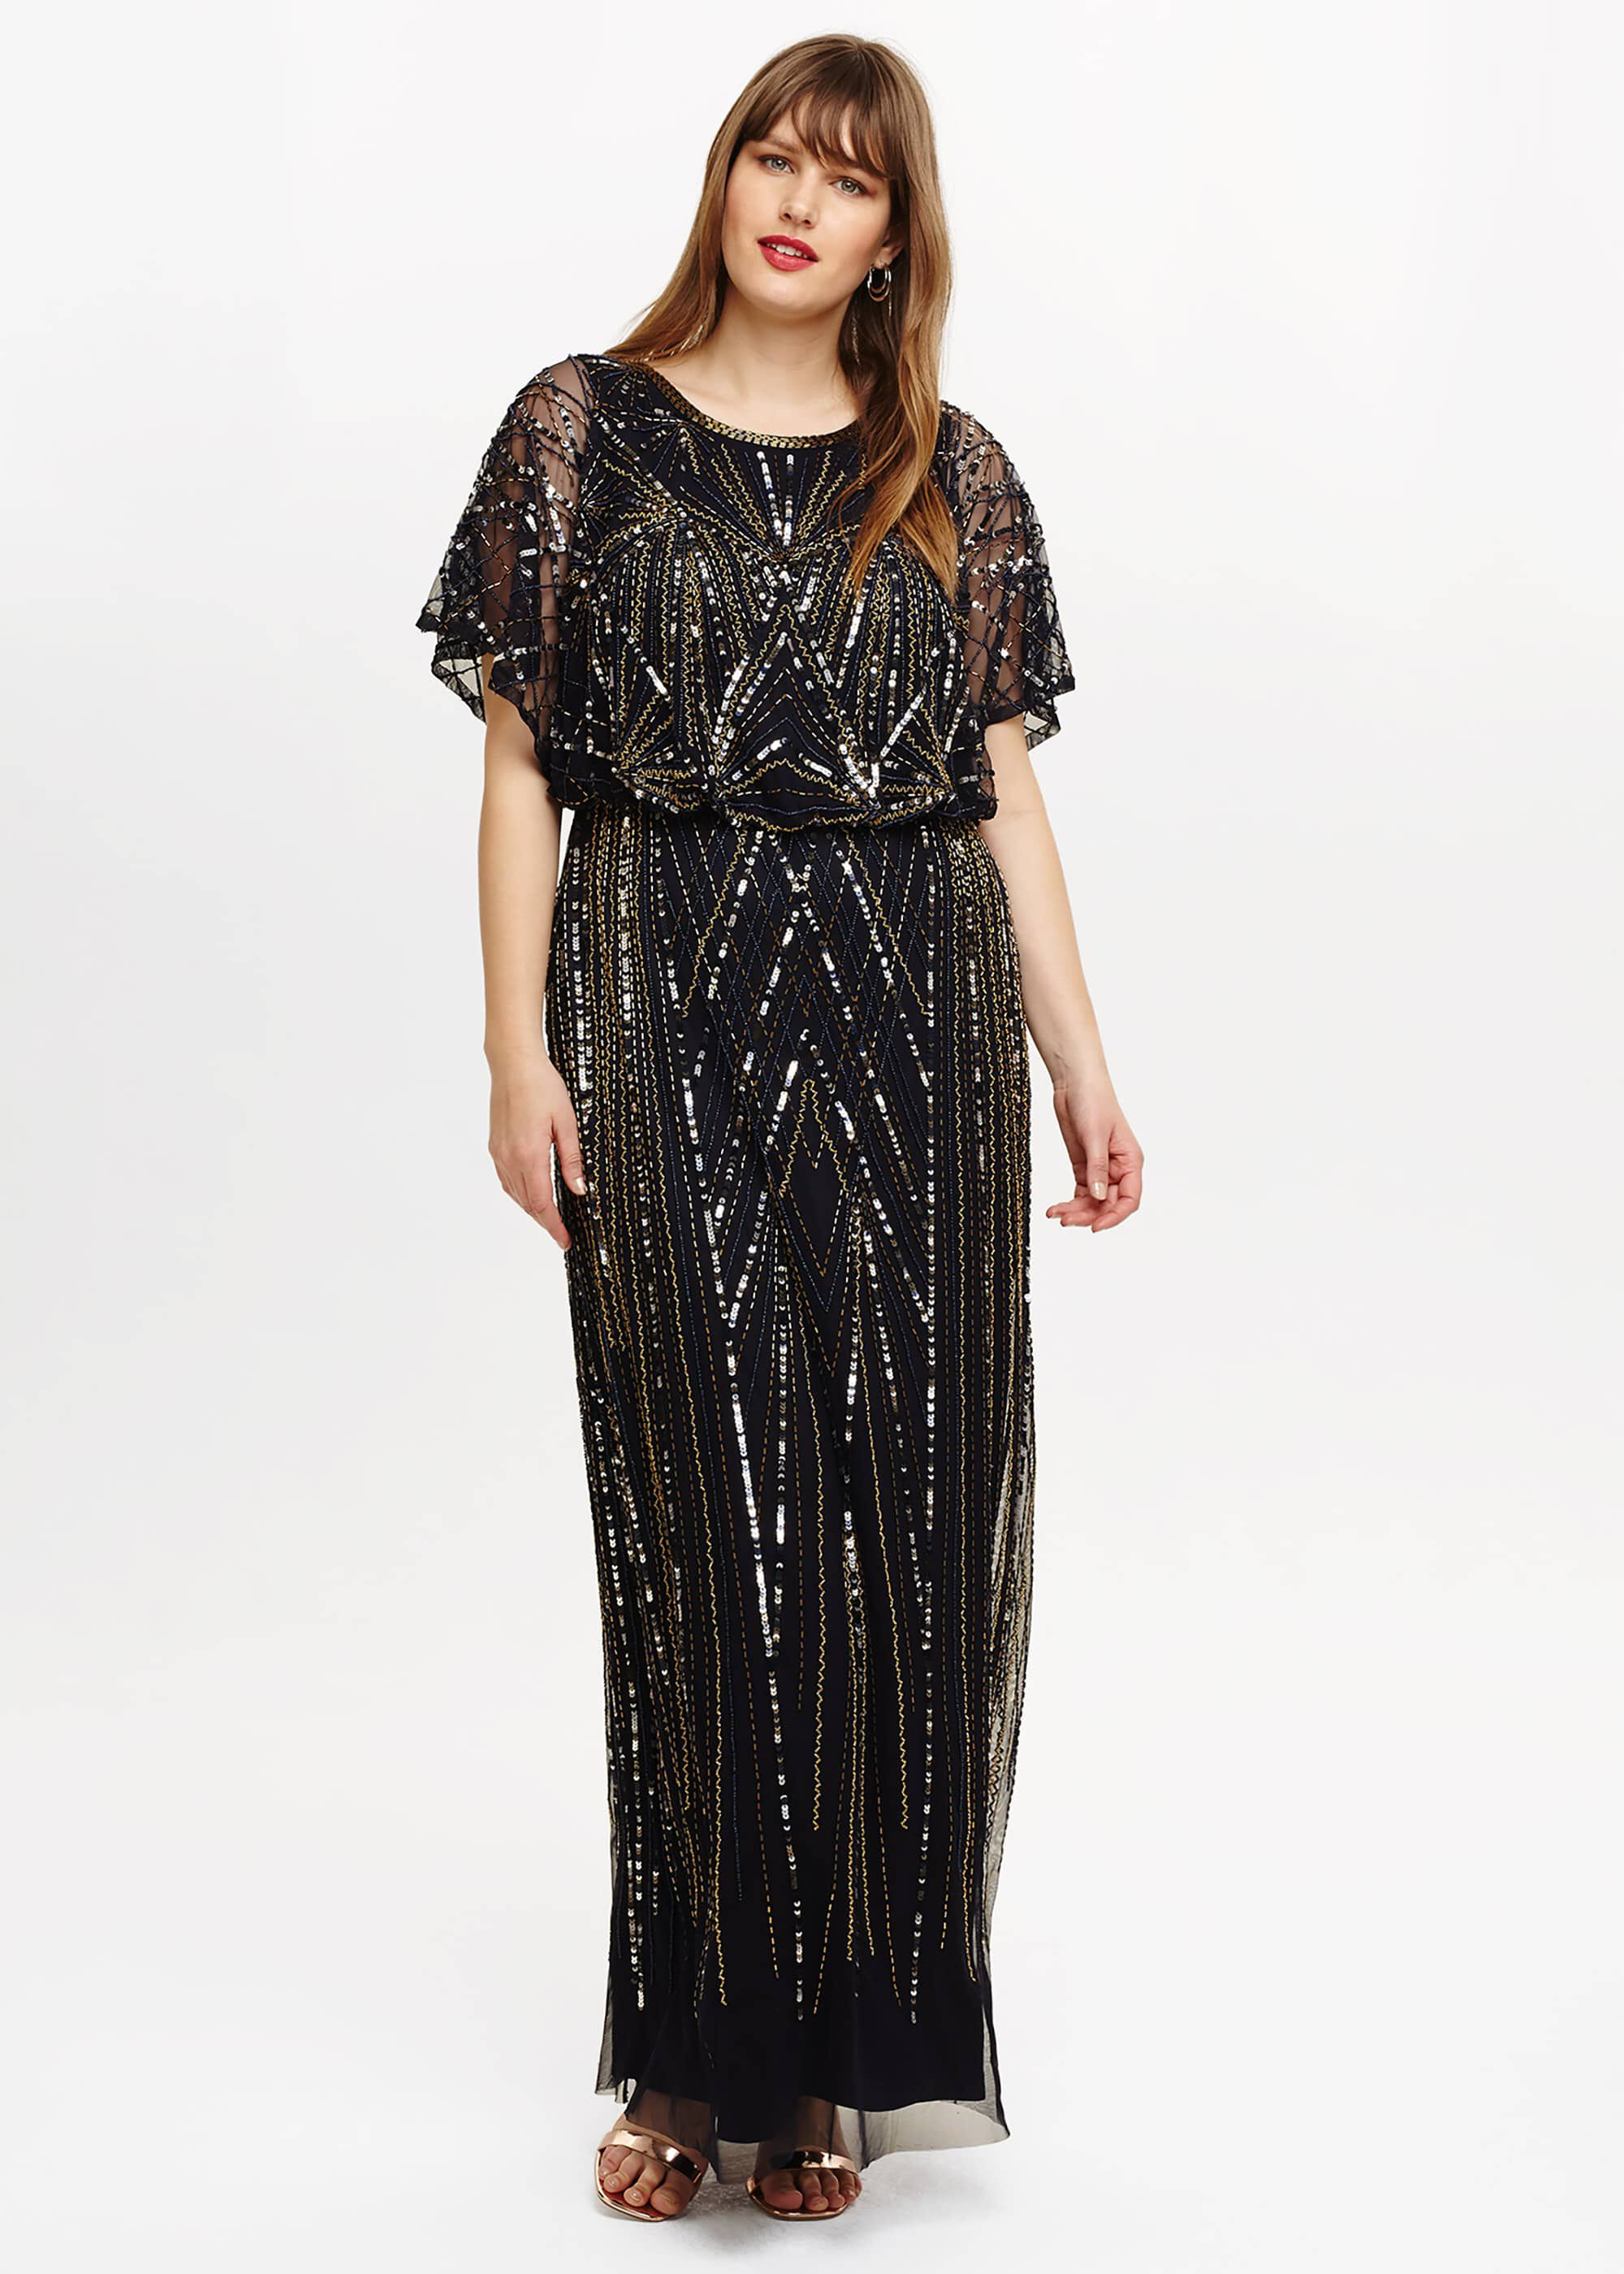 1920s Plus Size Flapper Dresses, Gatsby Dresses, Flapper Costumes Studio 8 Hermione Beaded Maxi Dress Blue Maxi Occasion Dress £295.00 AT vintagedancer.com